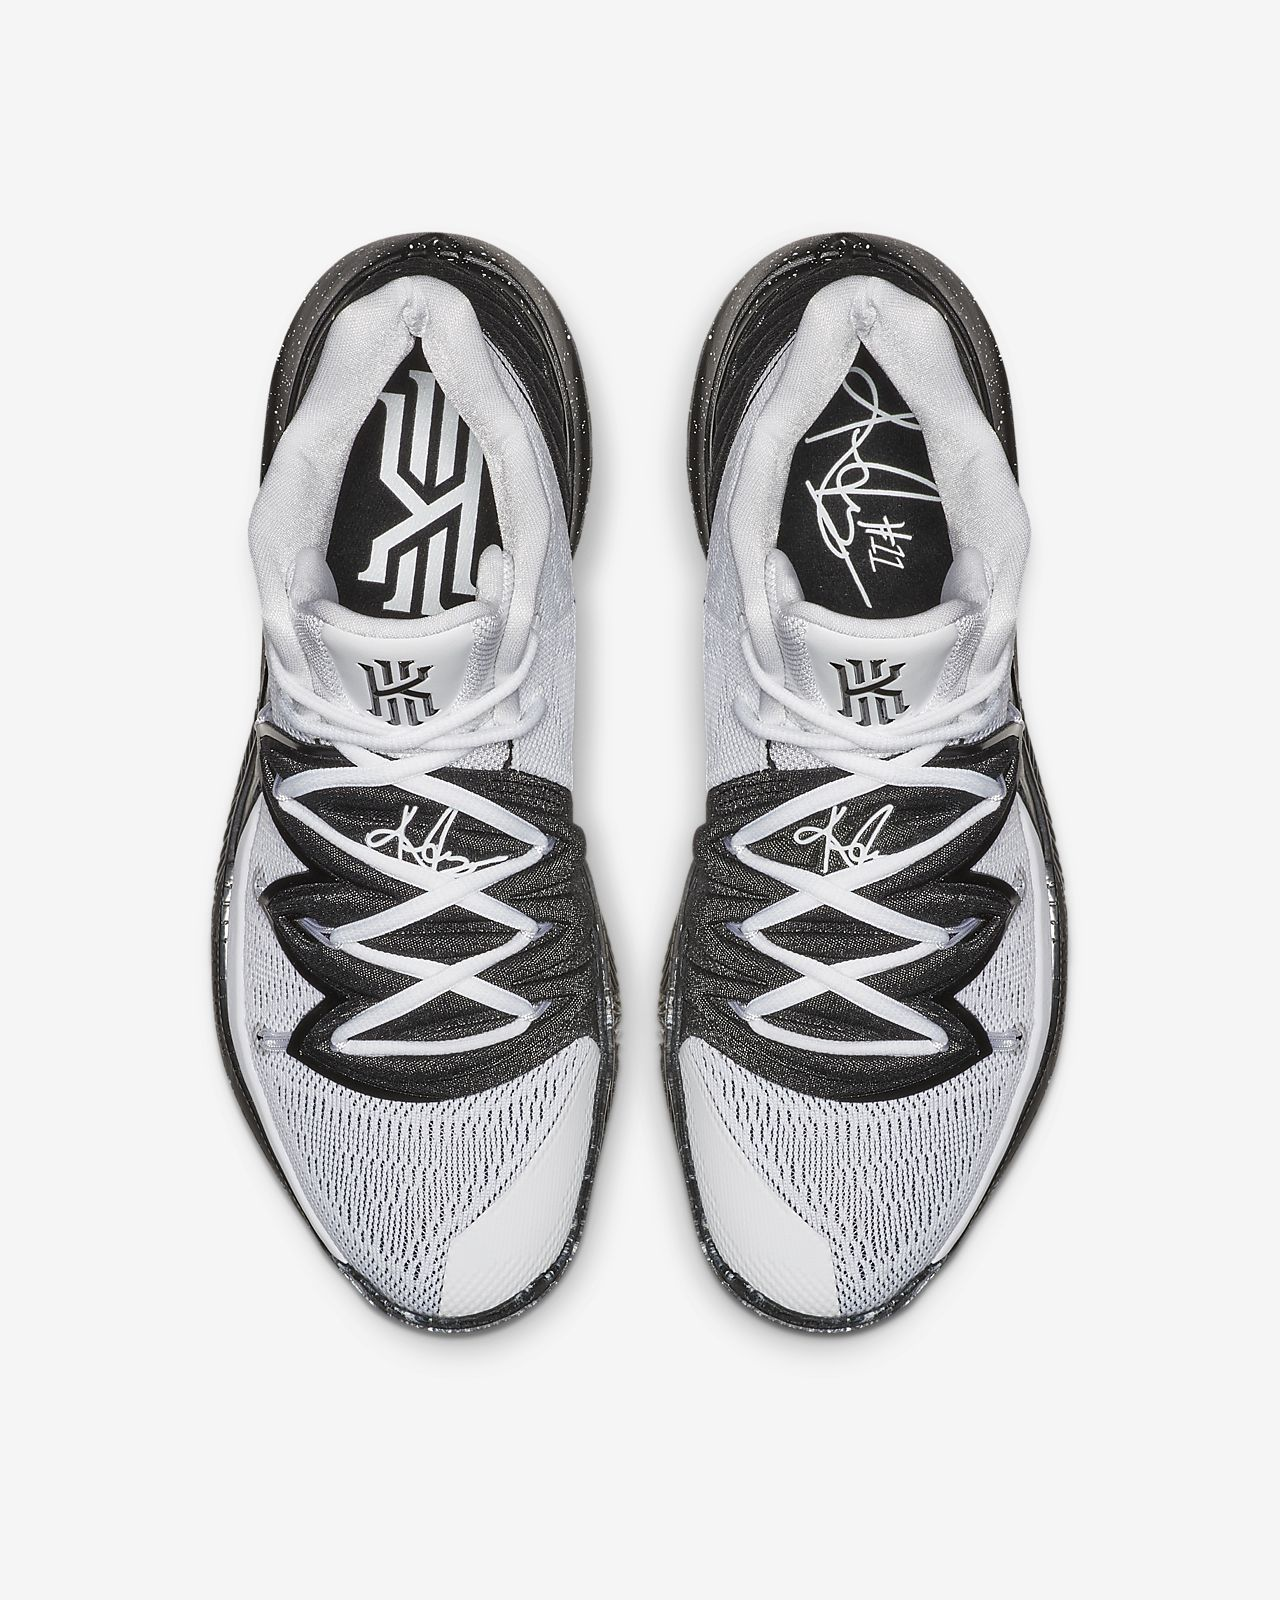 separation shoes ca663 ad506 Low Resolution Chaussure Kyrie 5 Chaussure Kyrie 5